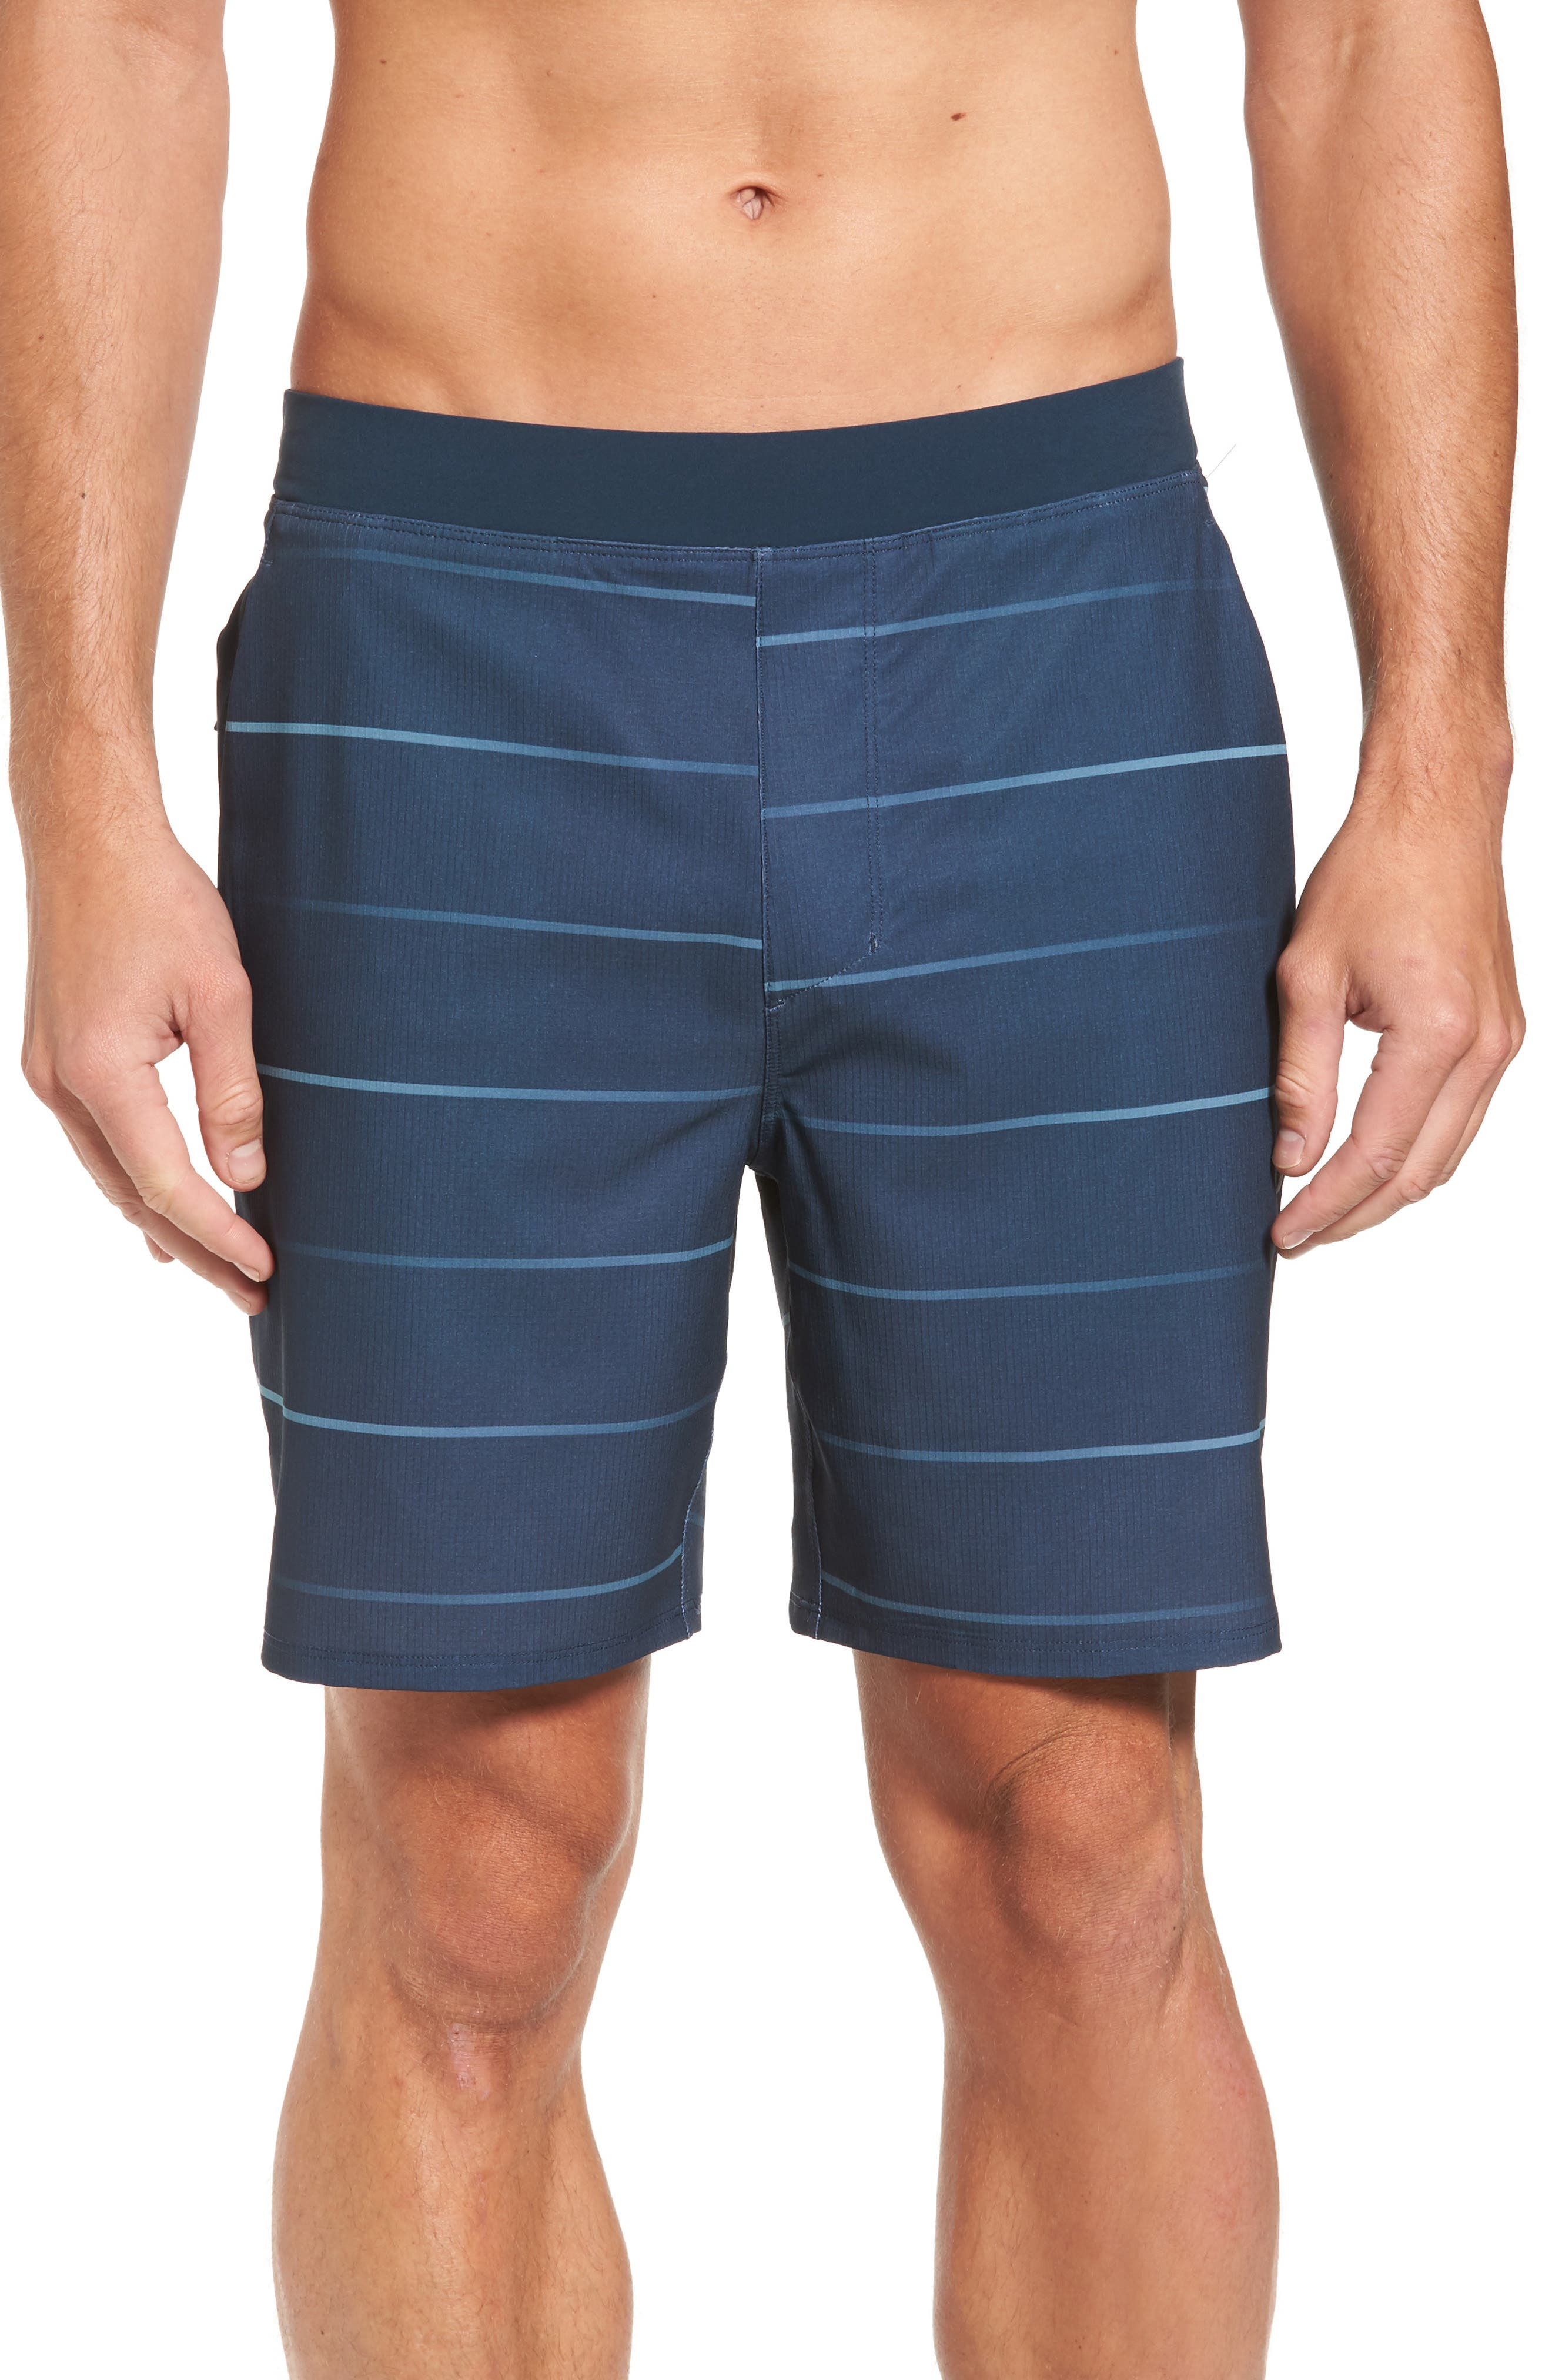 Alpha Trainer Stripe Shorts,                         Main,                         color, Armory Navy